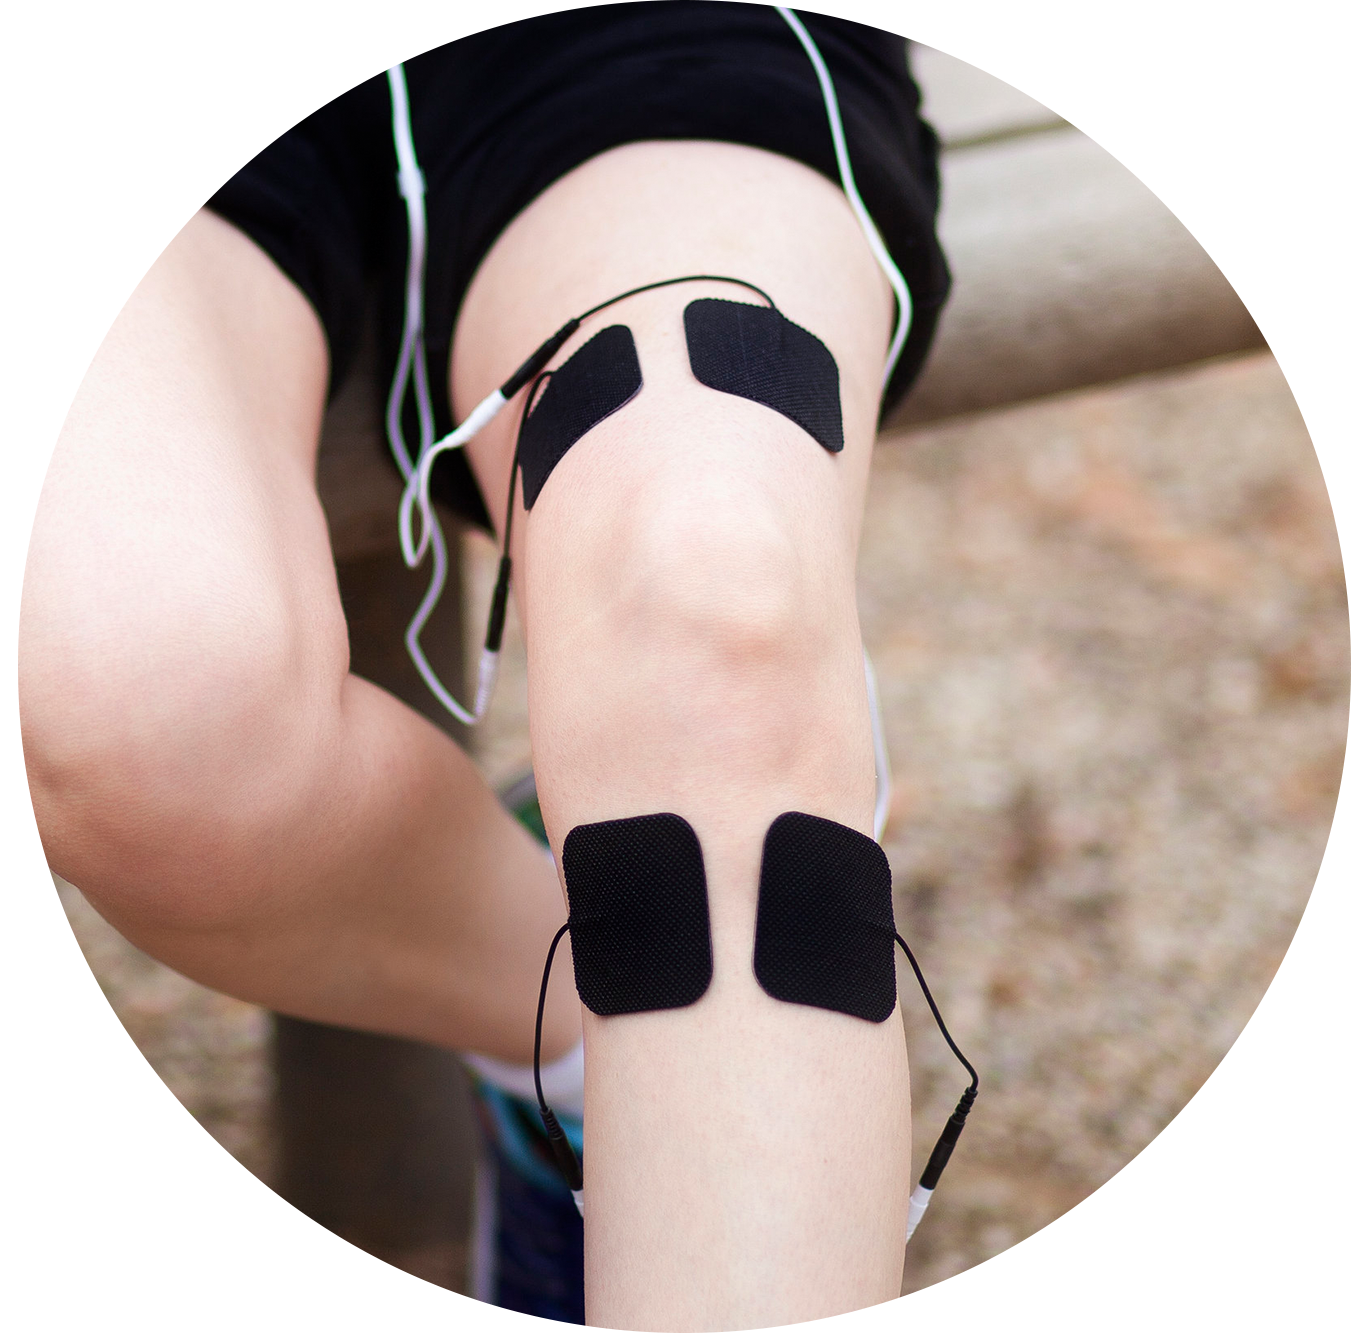 TENS therapy for knee pain